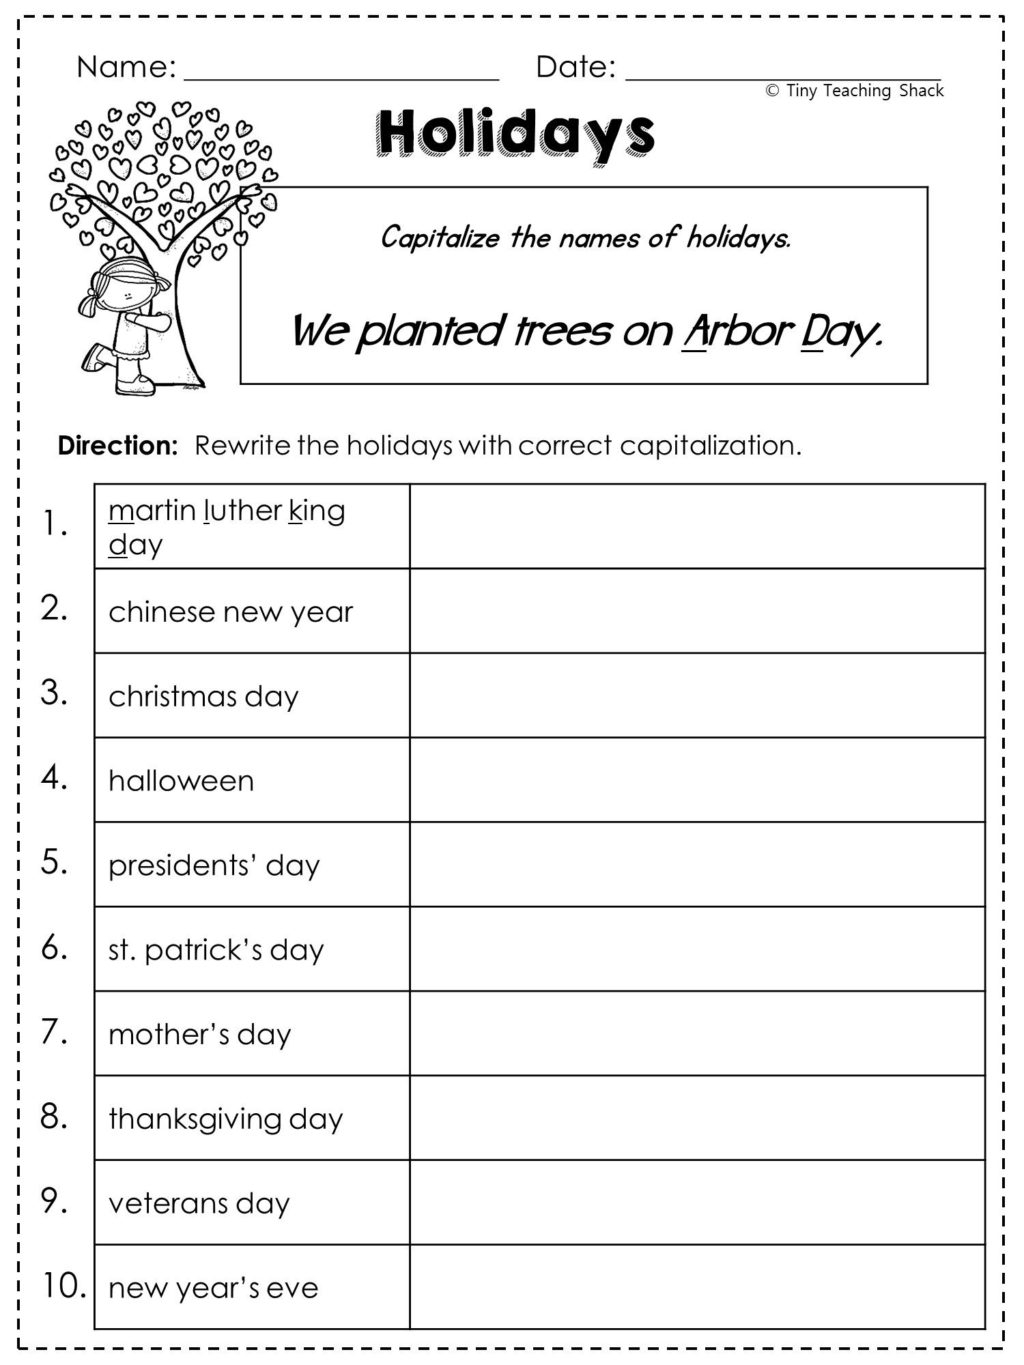 Worksheet ~ 2Nd Grade Math Christmas Elaheets Pdf Cool Games